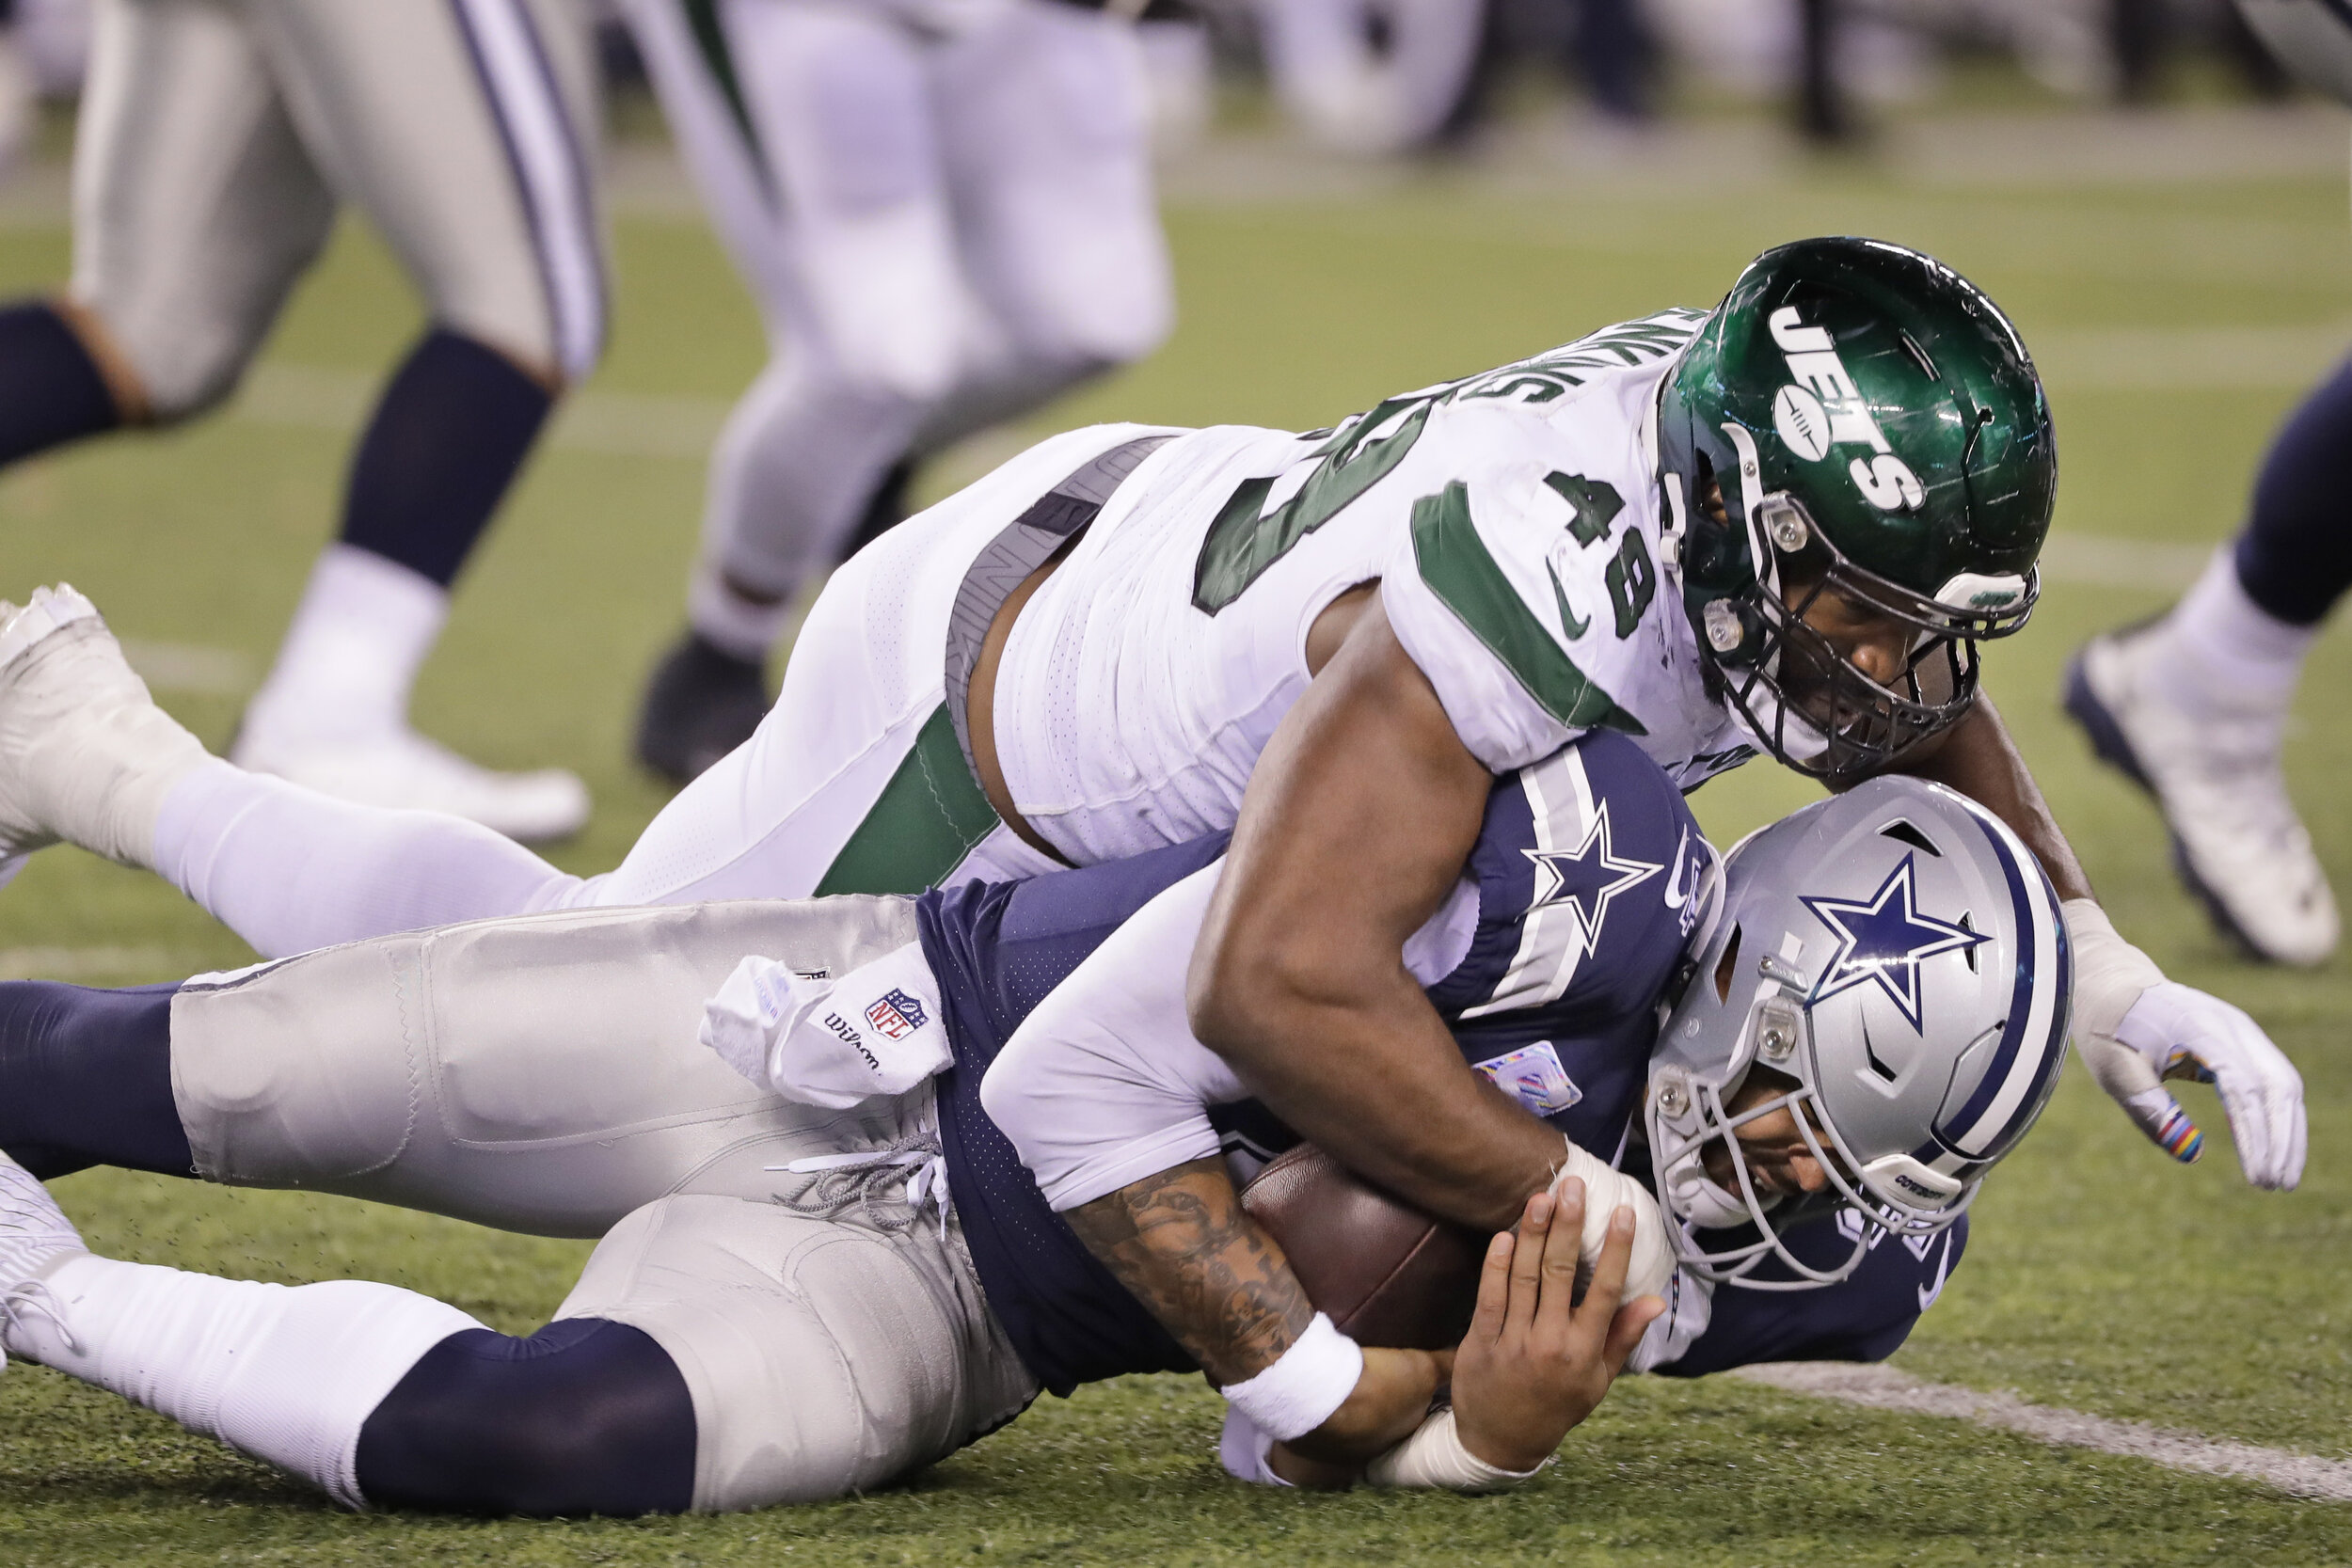 New York Jets' Jordan Jenkins, top, takes down Dallas Cowboys quarterback Dak Prescott during the second half of an NFL football game, Sunday, Oct. 13, 2019, in East Rutherford, N.J. The Jets defeated the Cowboys 24-22.  AP Photo/Frank Franklin II